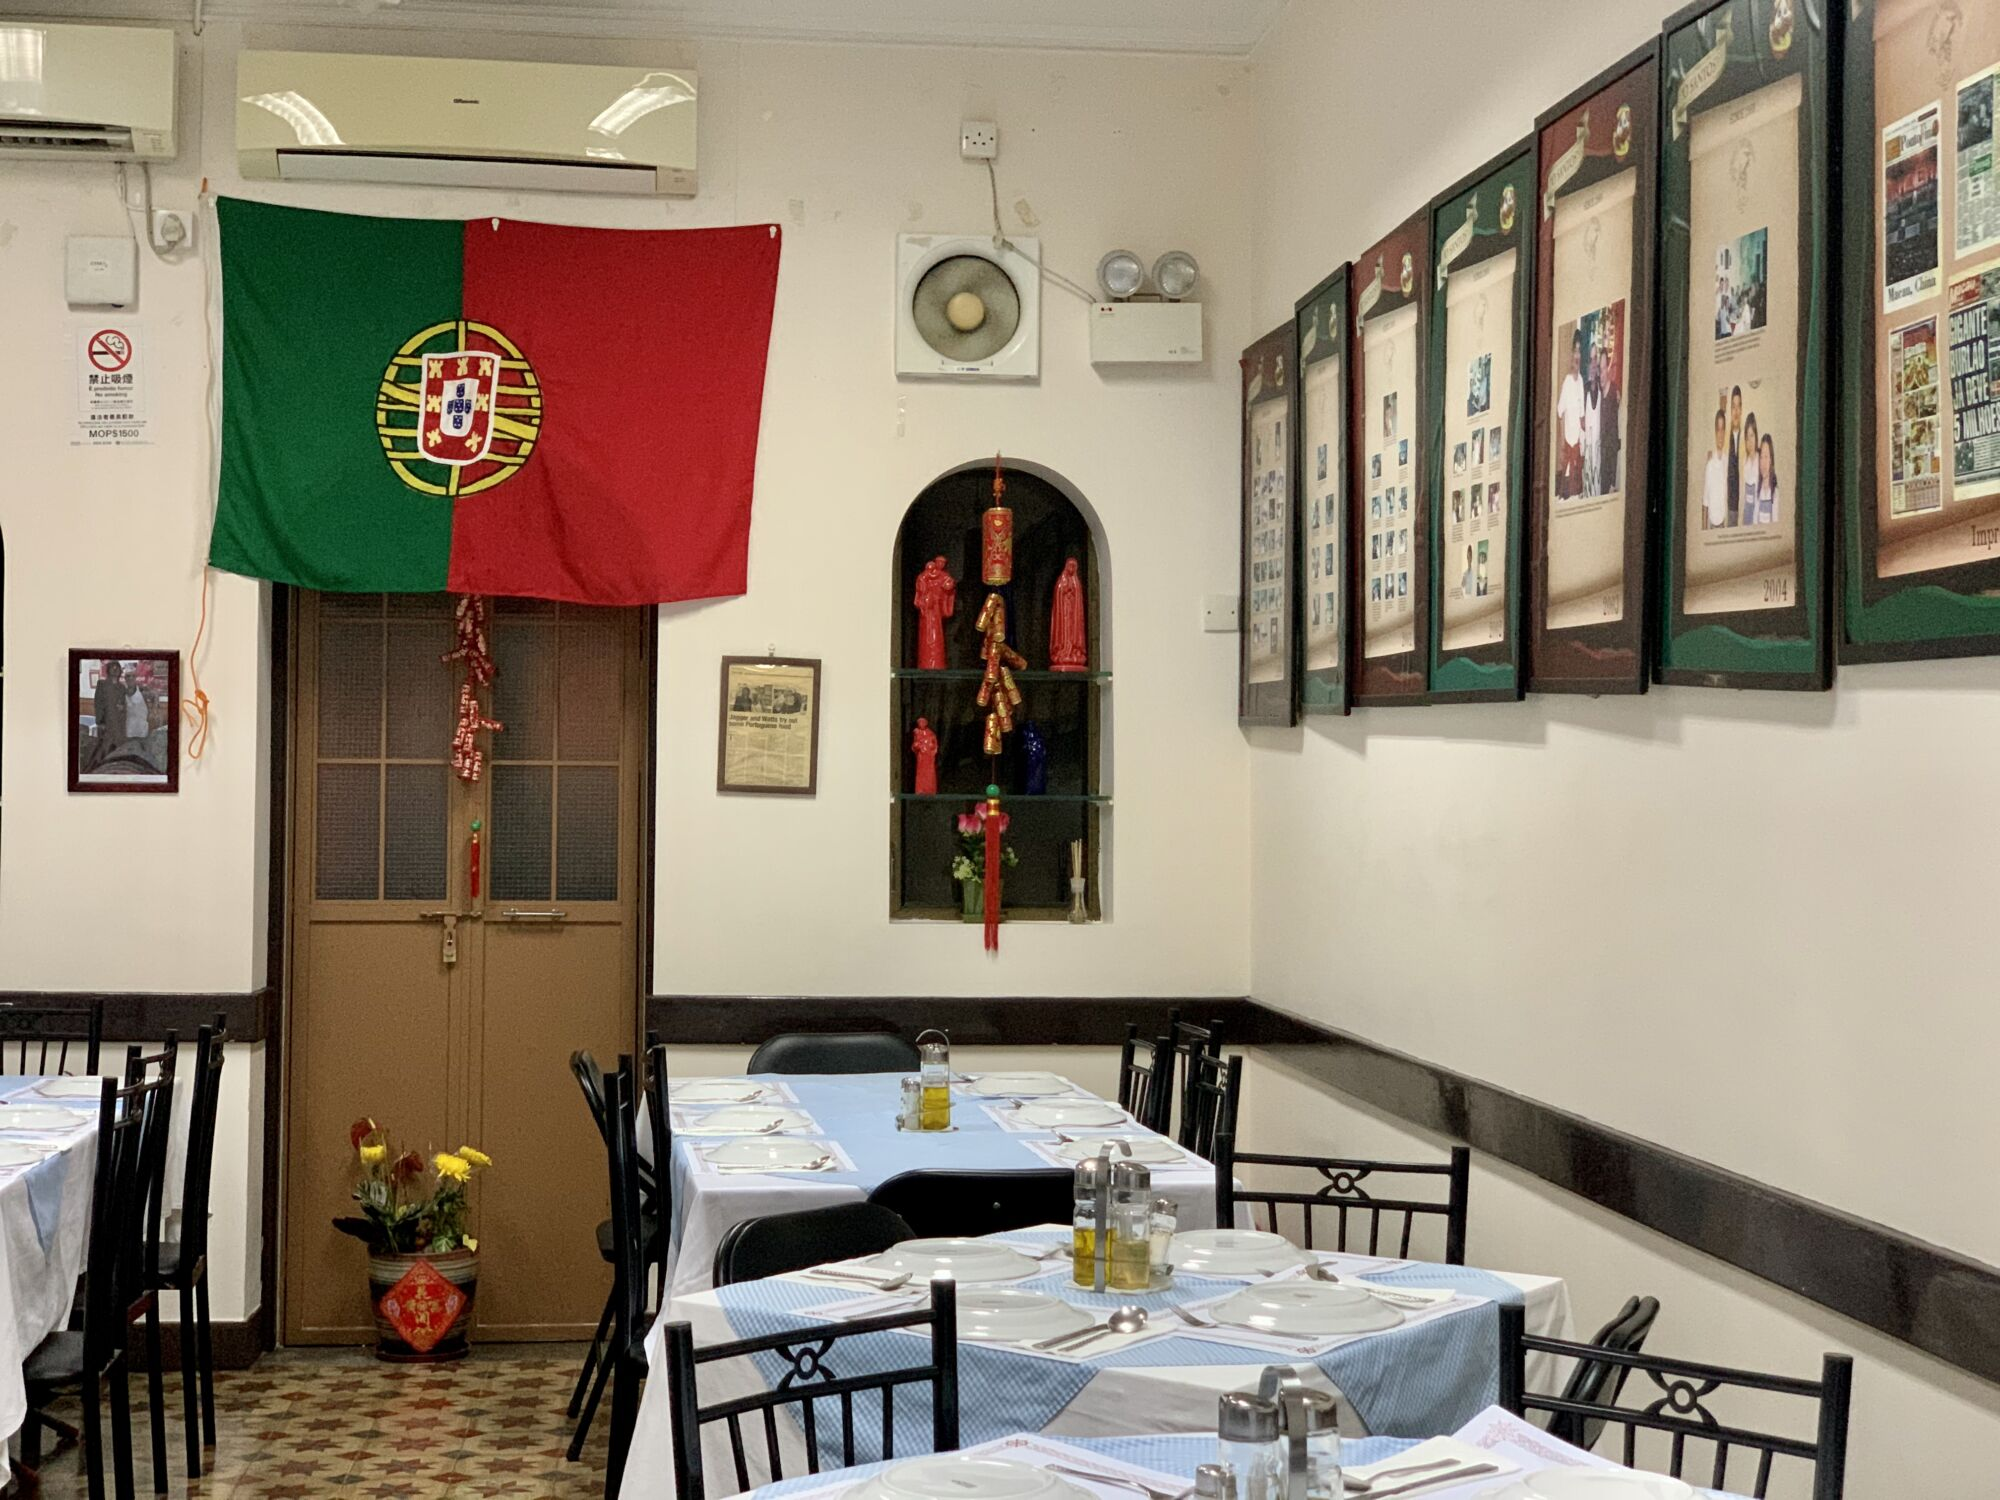 O Santos Restaurant Indoors Tables Upstairs with Portuguese Flag on the Wall Wide Macau Lifestyle